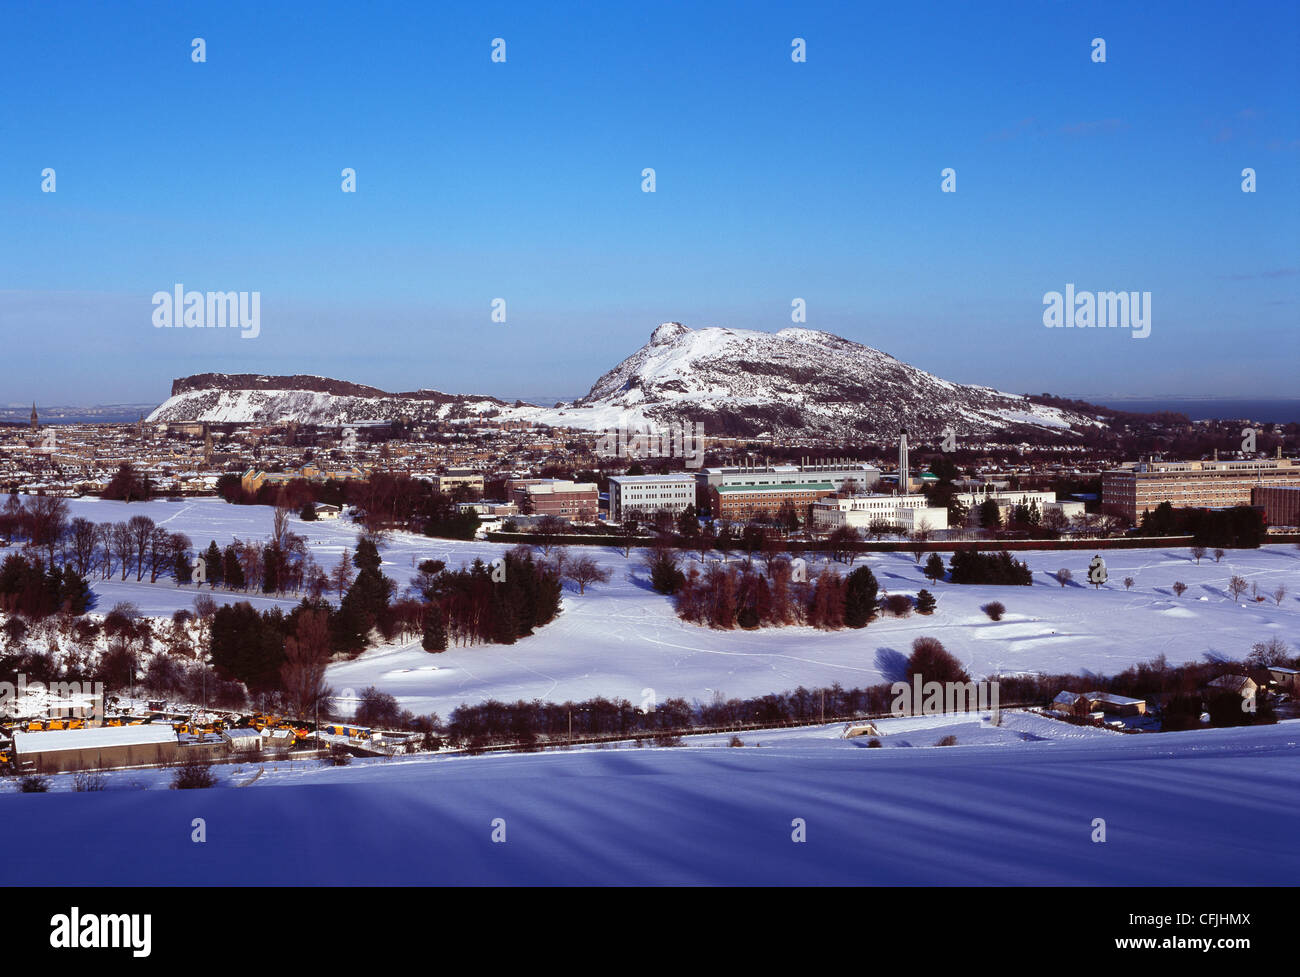 Arthur's Seat and central Edinburgh viewed from Braid Hills, Edinburgh - Stock Image